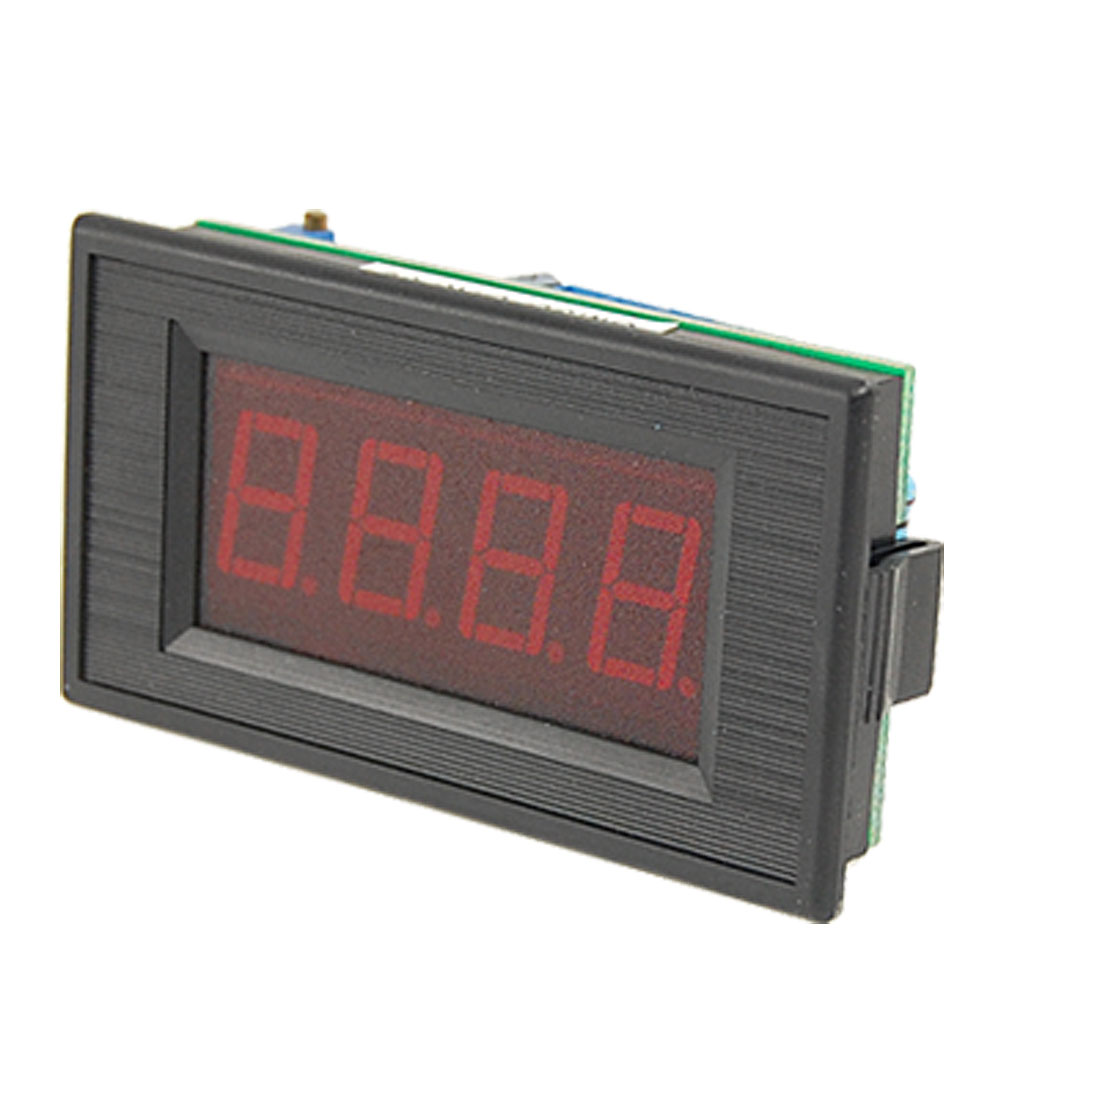 DC 0.02A 3 1/2 Digits Red LED Panel Ammeter Ampere Meter